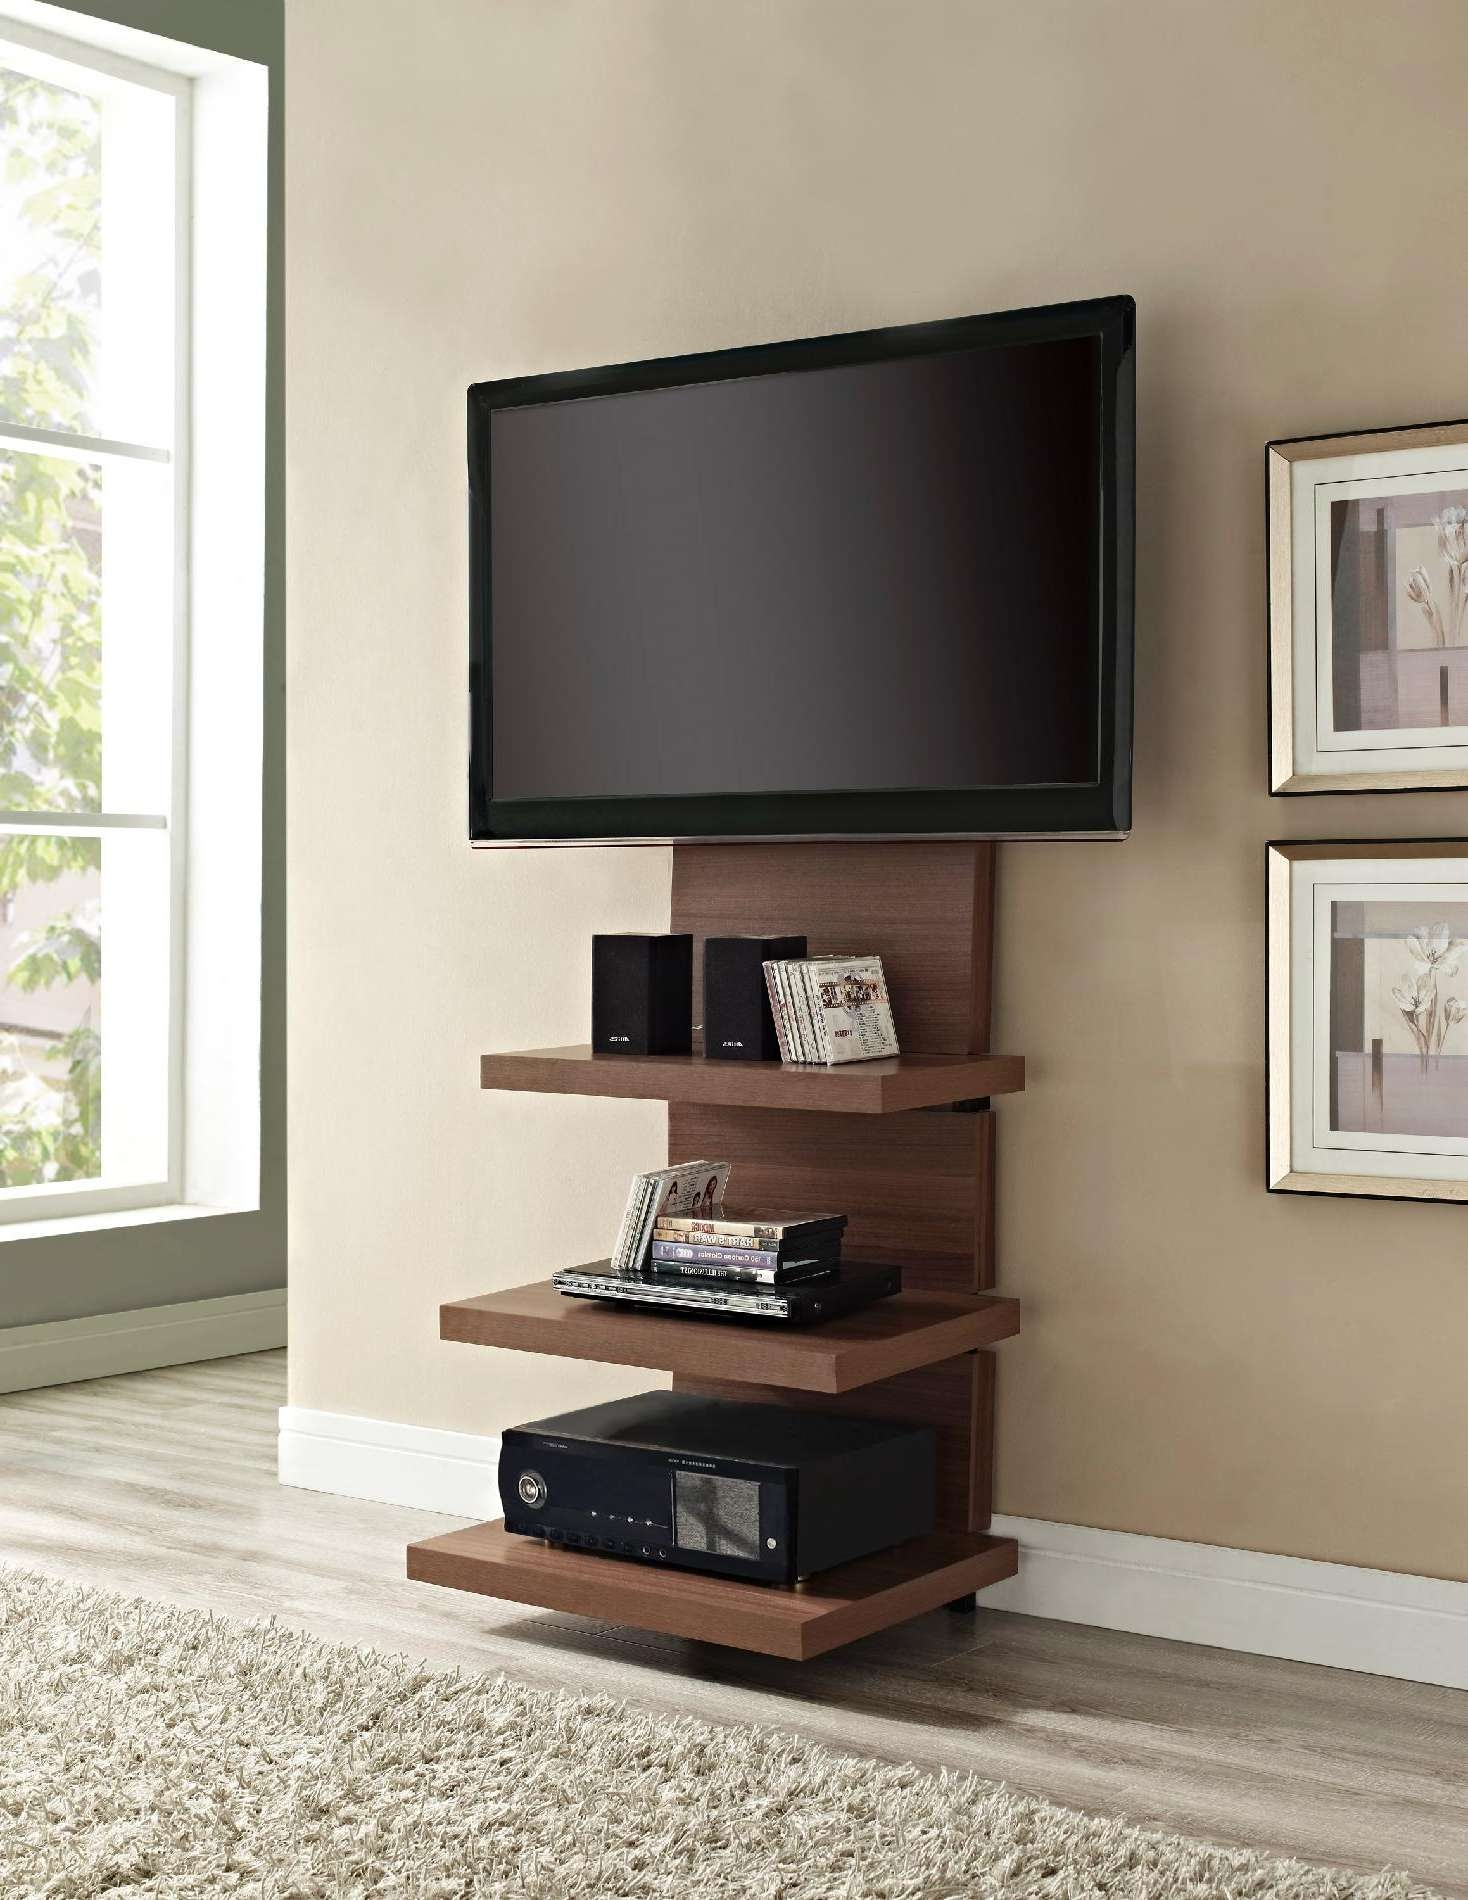 Tall Tv Stand For Bedroom Also Stands New Thin Ideas Images Within Modern Wall Mount Tv Stands (View 19 of 20)